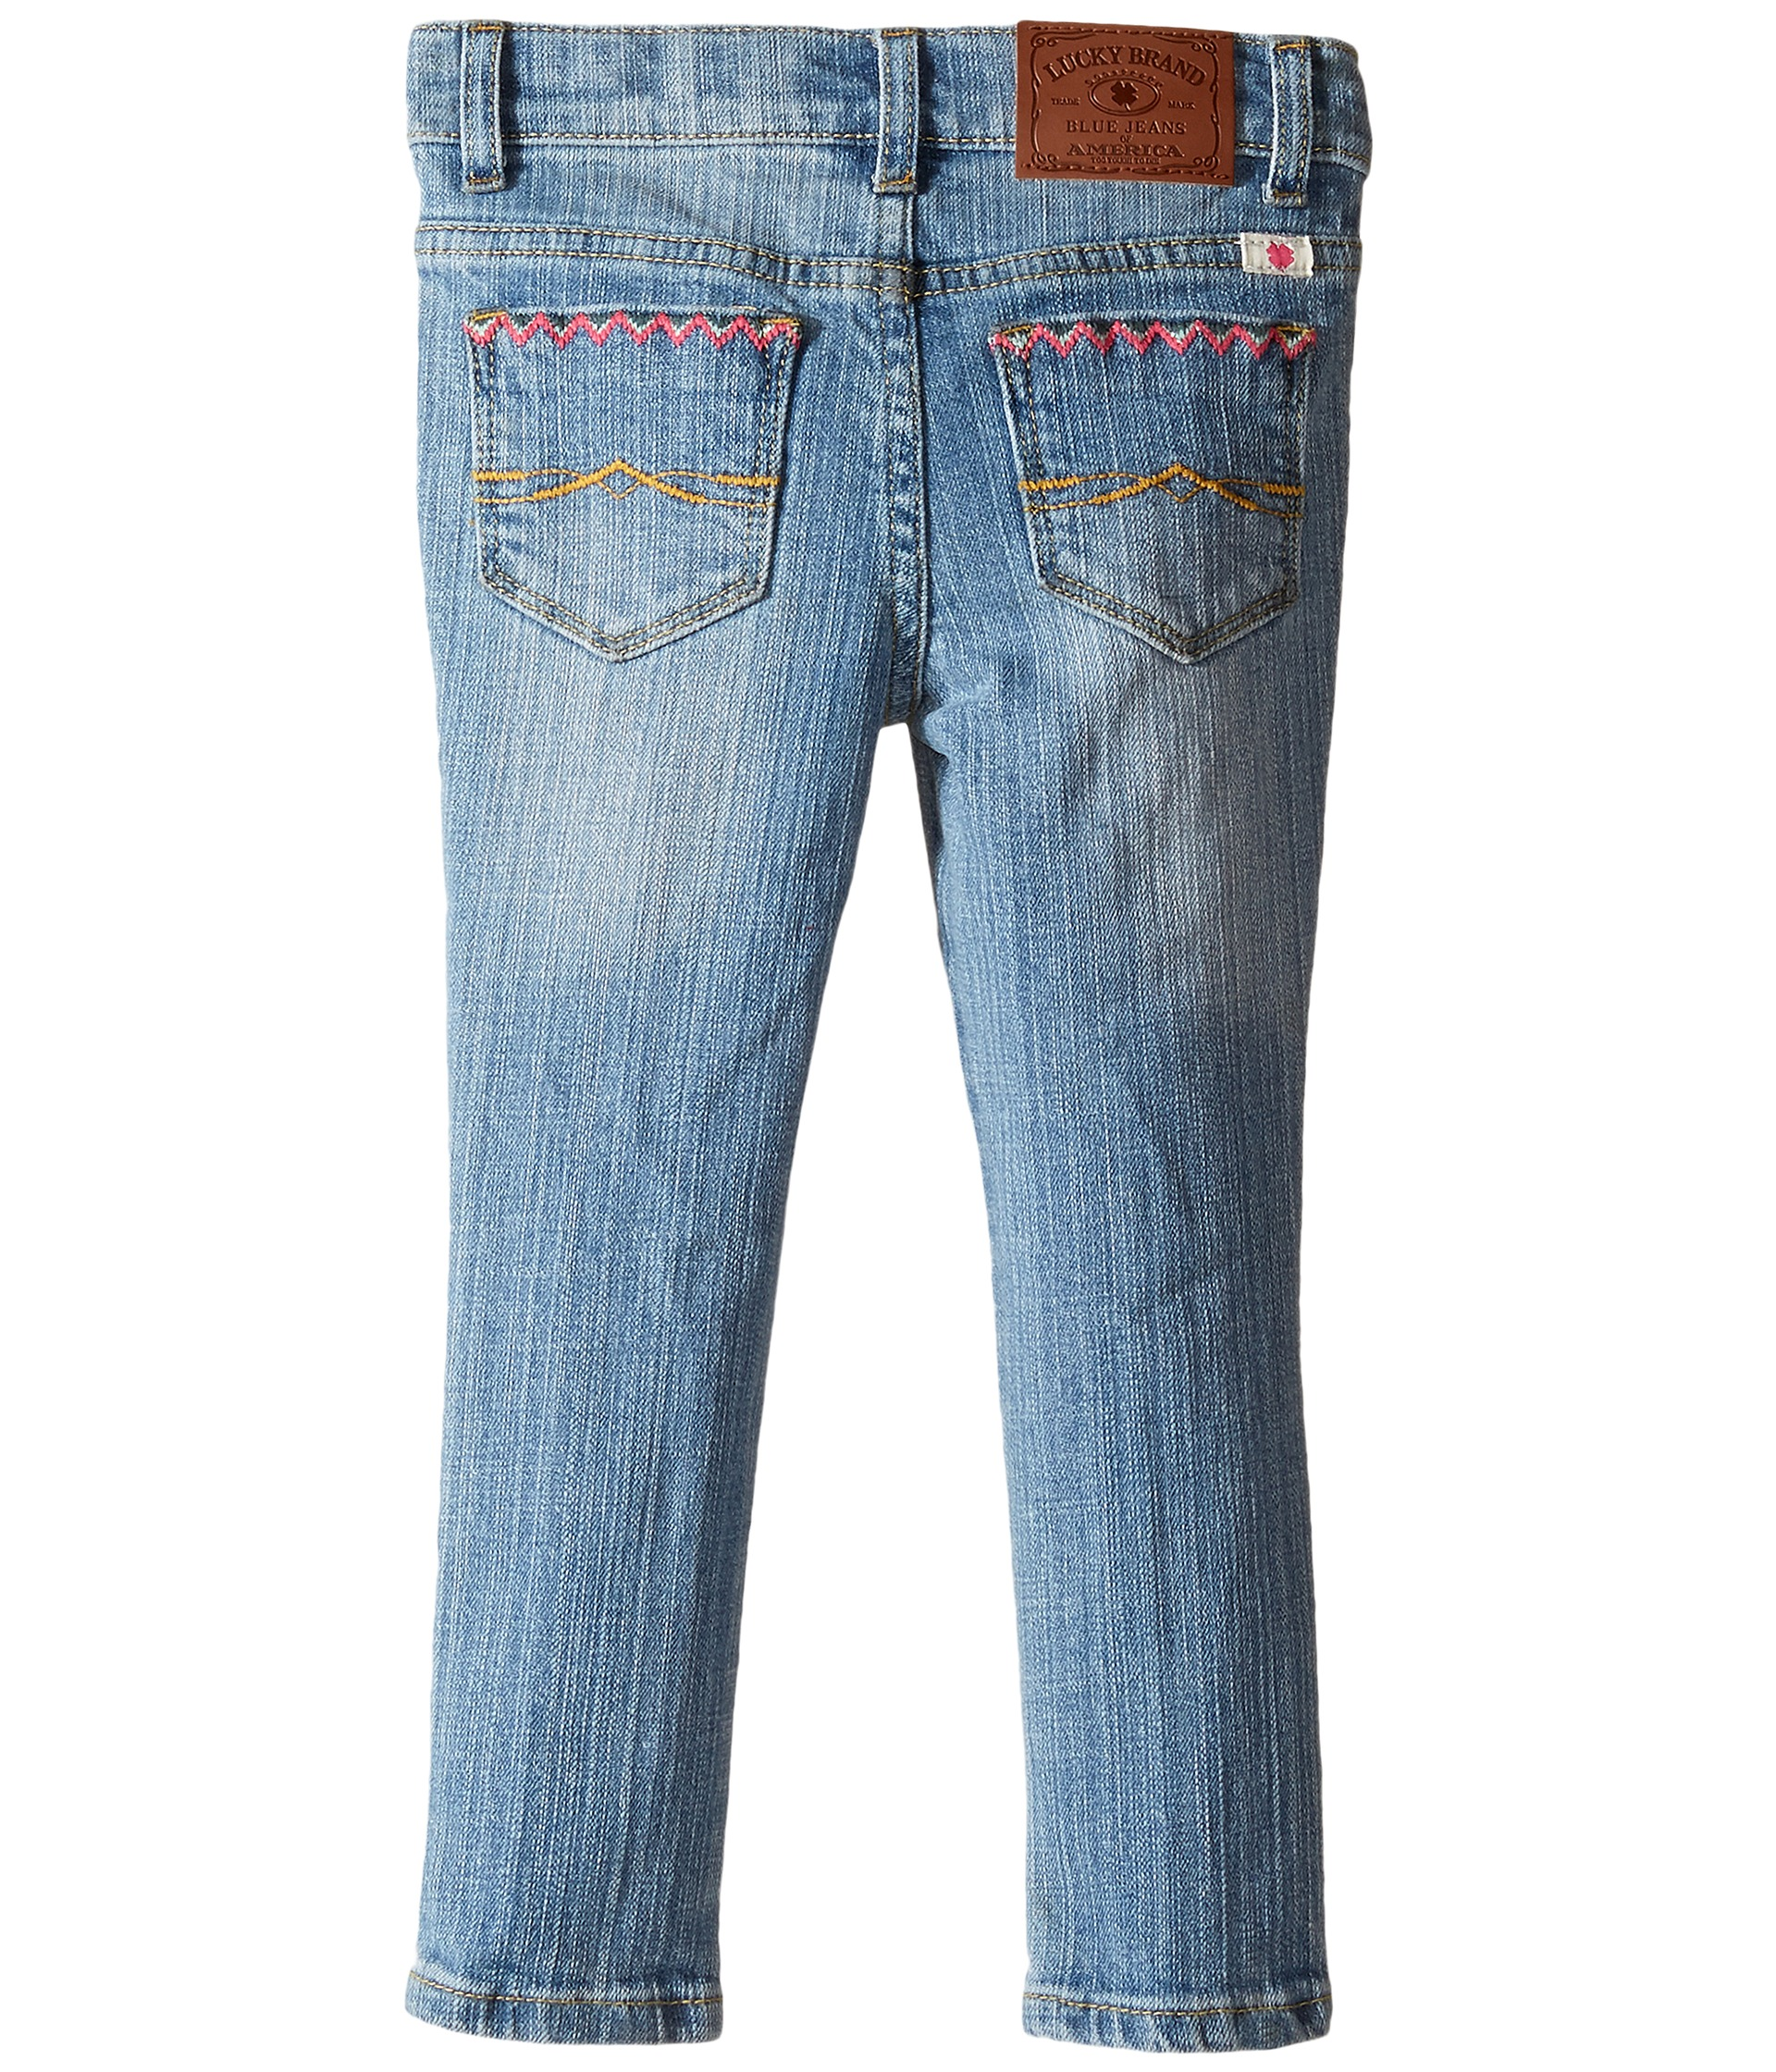 Lucky brand kids zoe jeans w embroidery toddler at